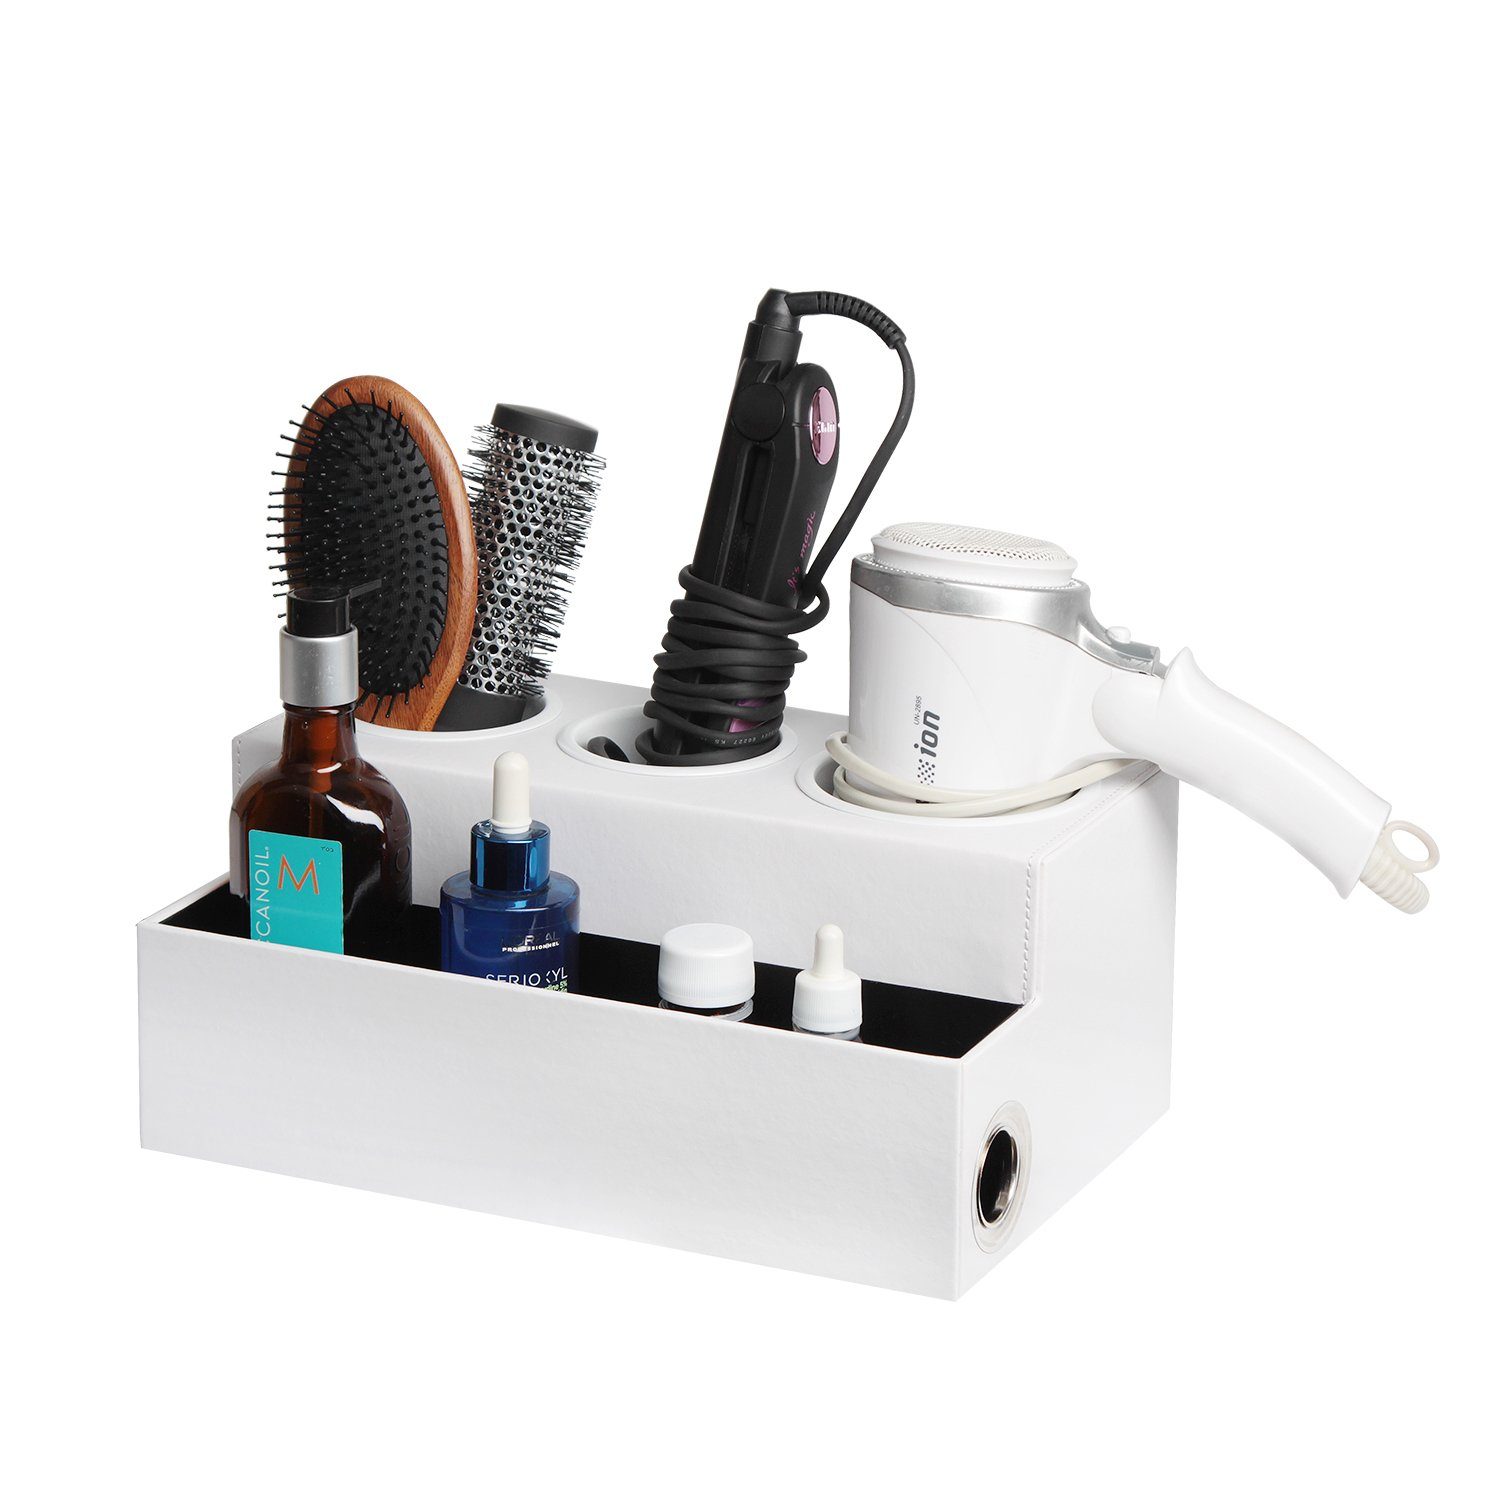 JackCubeDesign Hair Dryer Holder Hair Styling Product Care Tool Organiser Bath Supplies Accessories Tray Stand Storage Bathroom Vanity Countertop with 3 Holes (White) – :MK154D